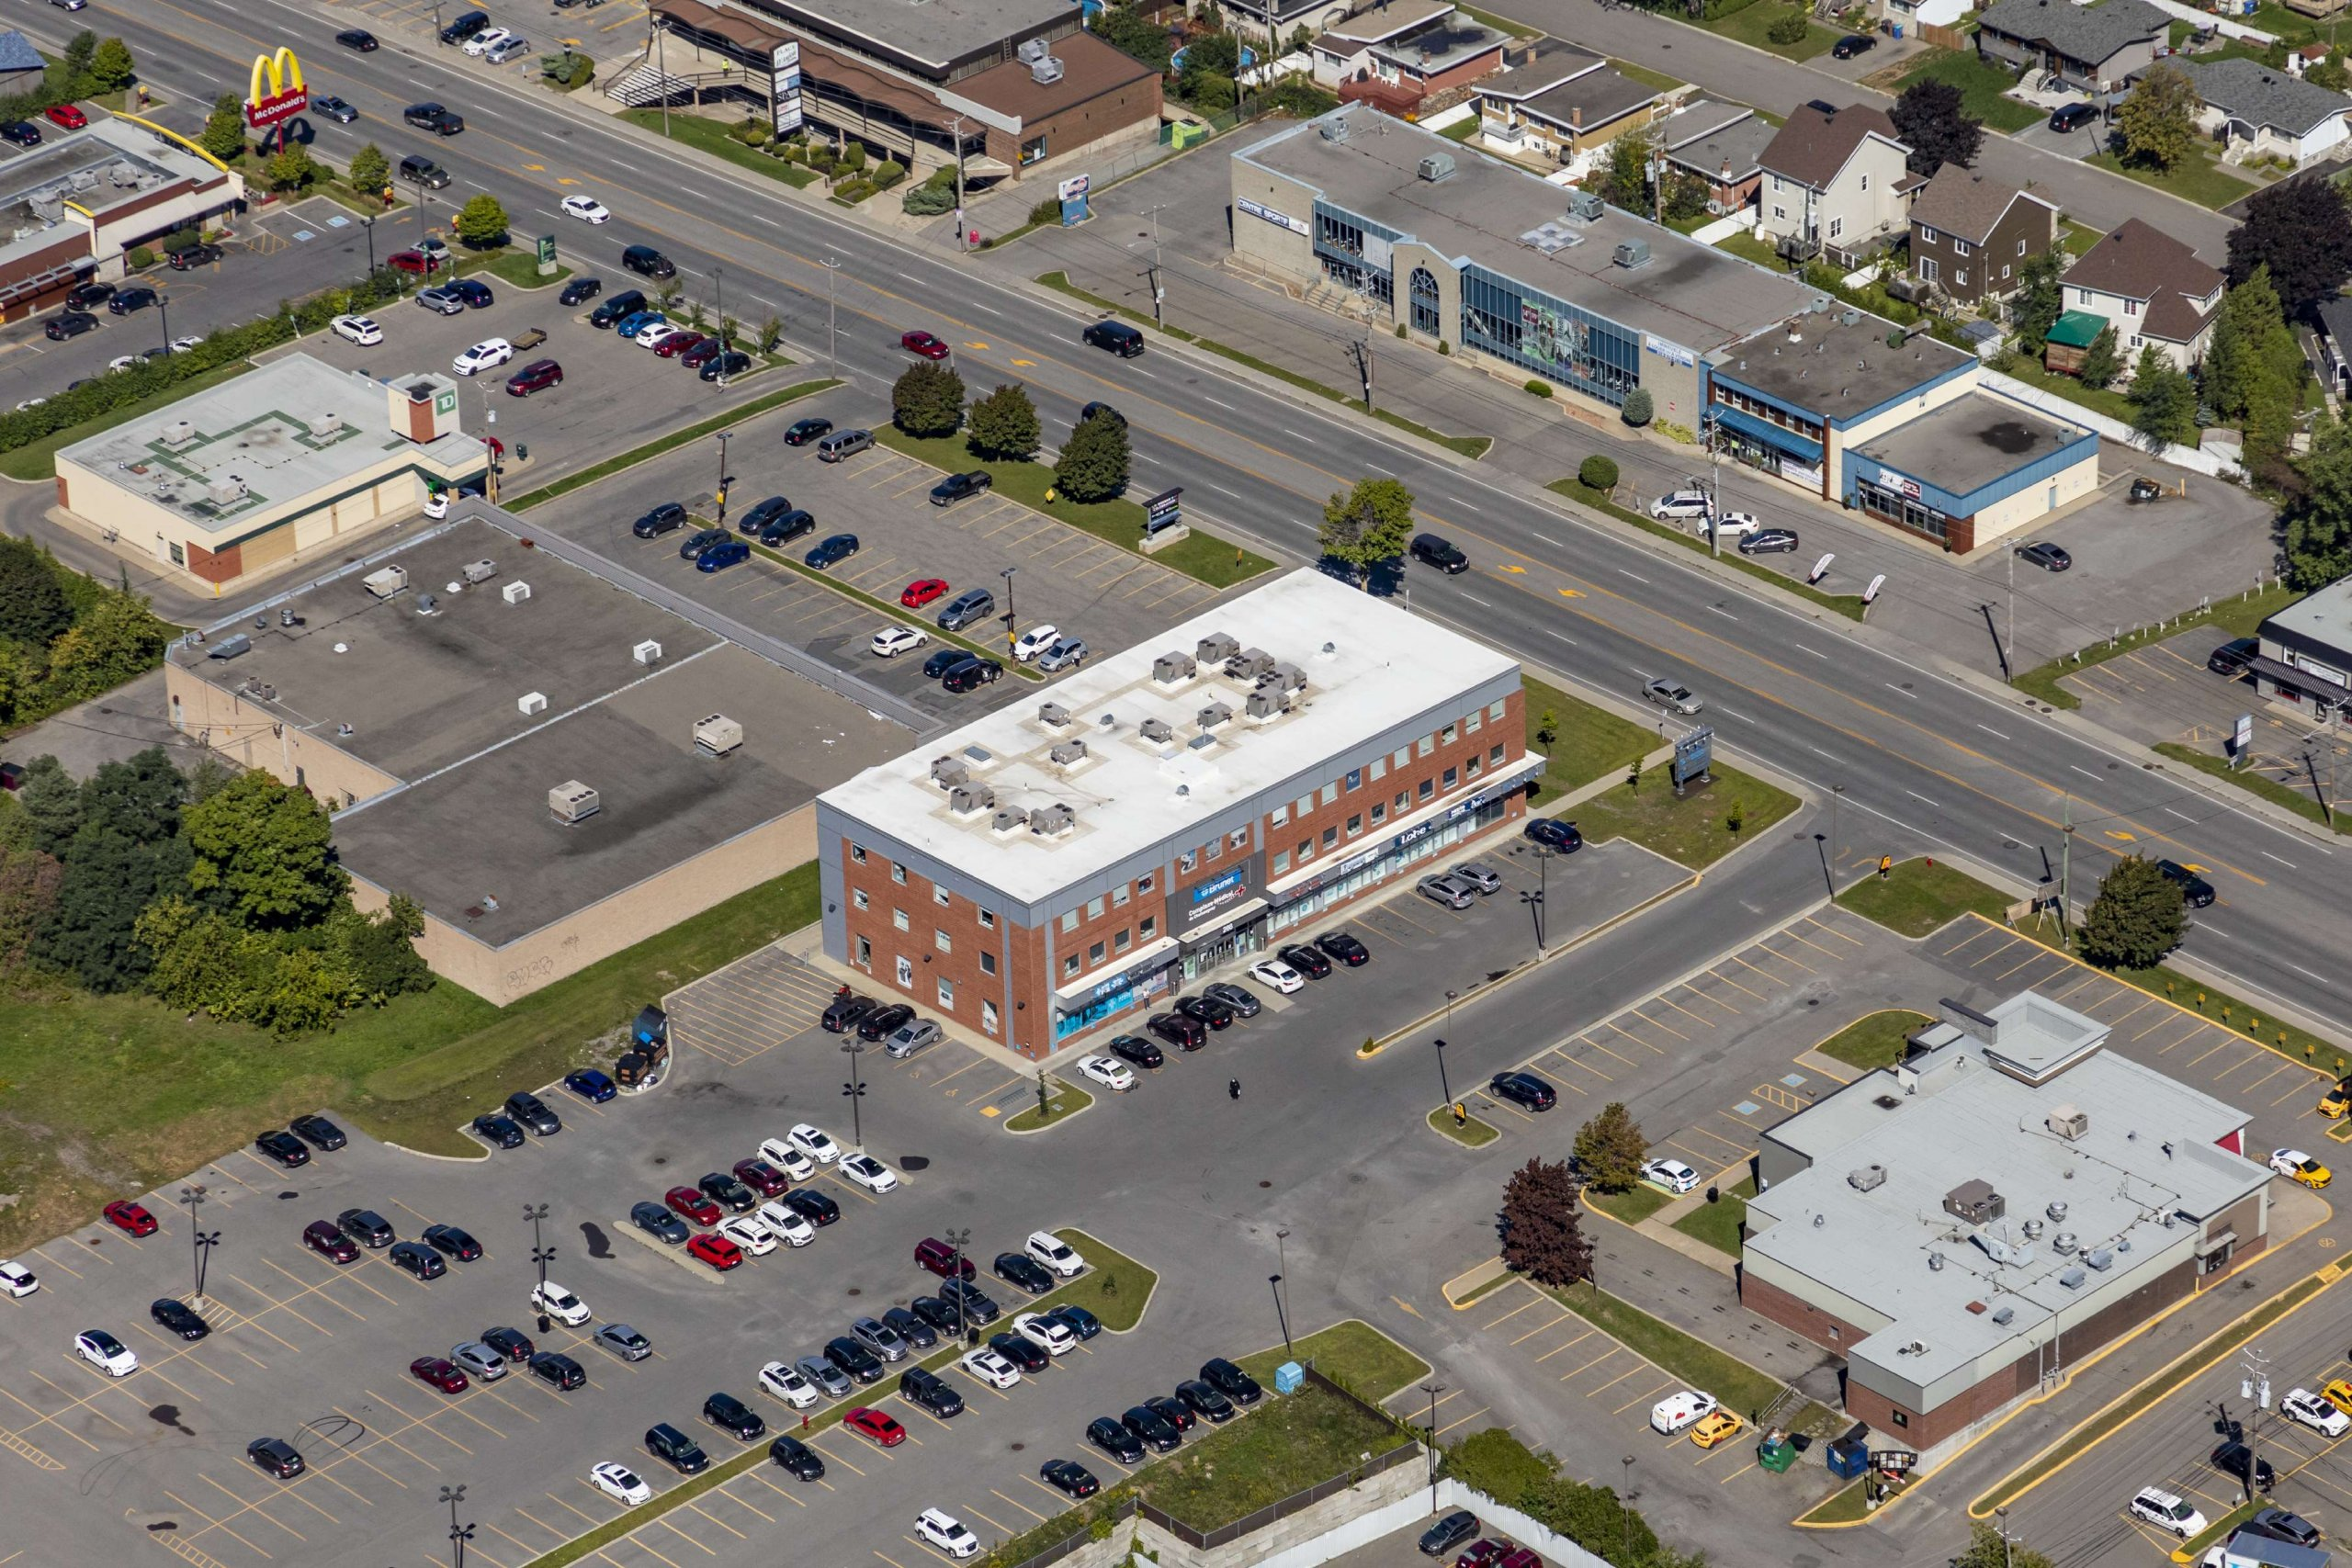 Clinique medicale Chateauguay